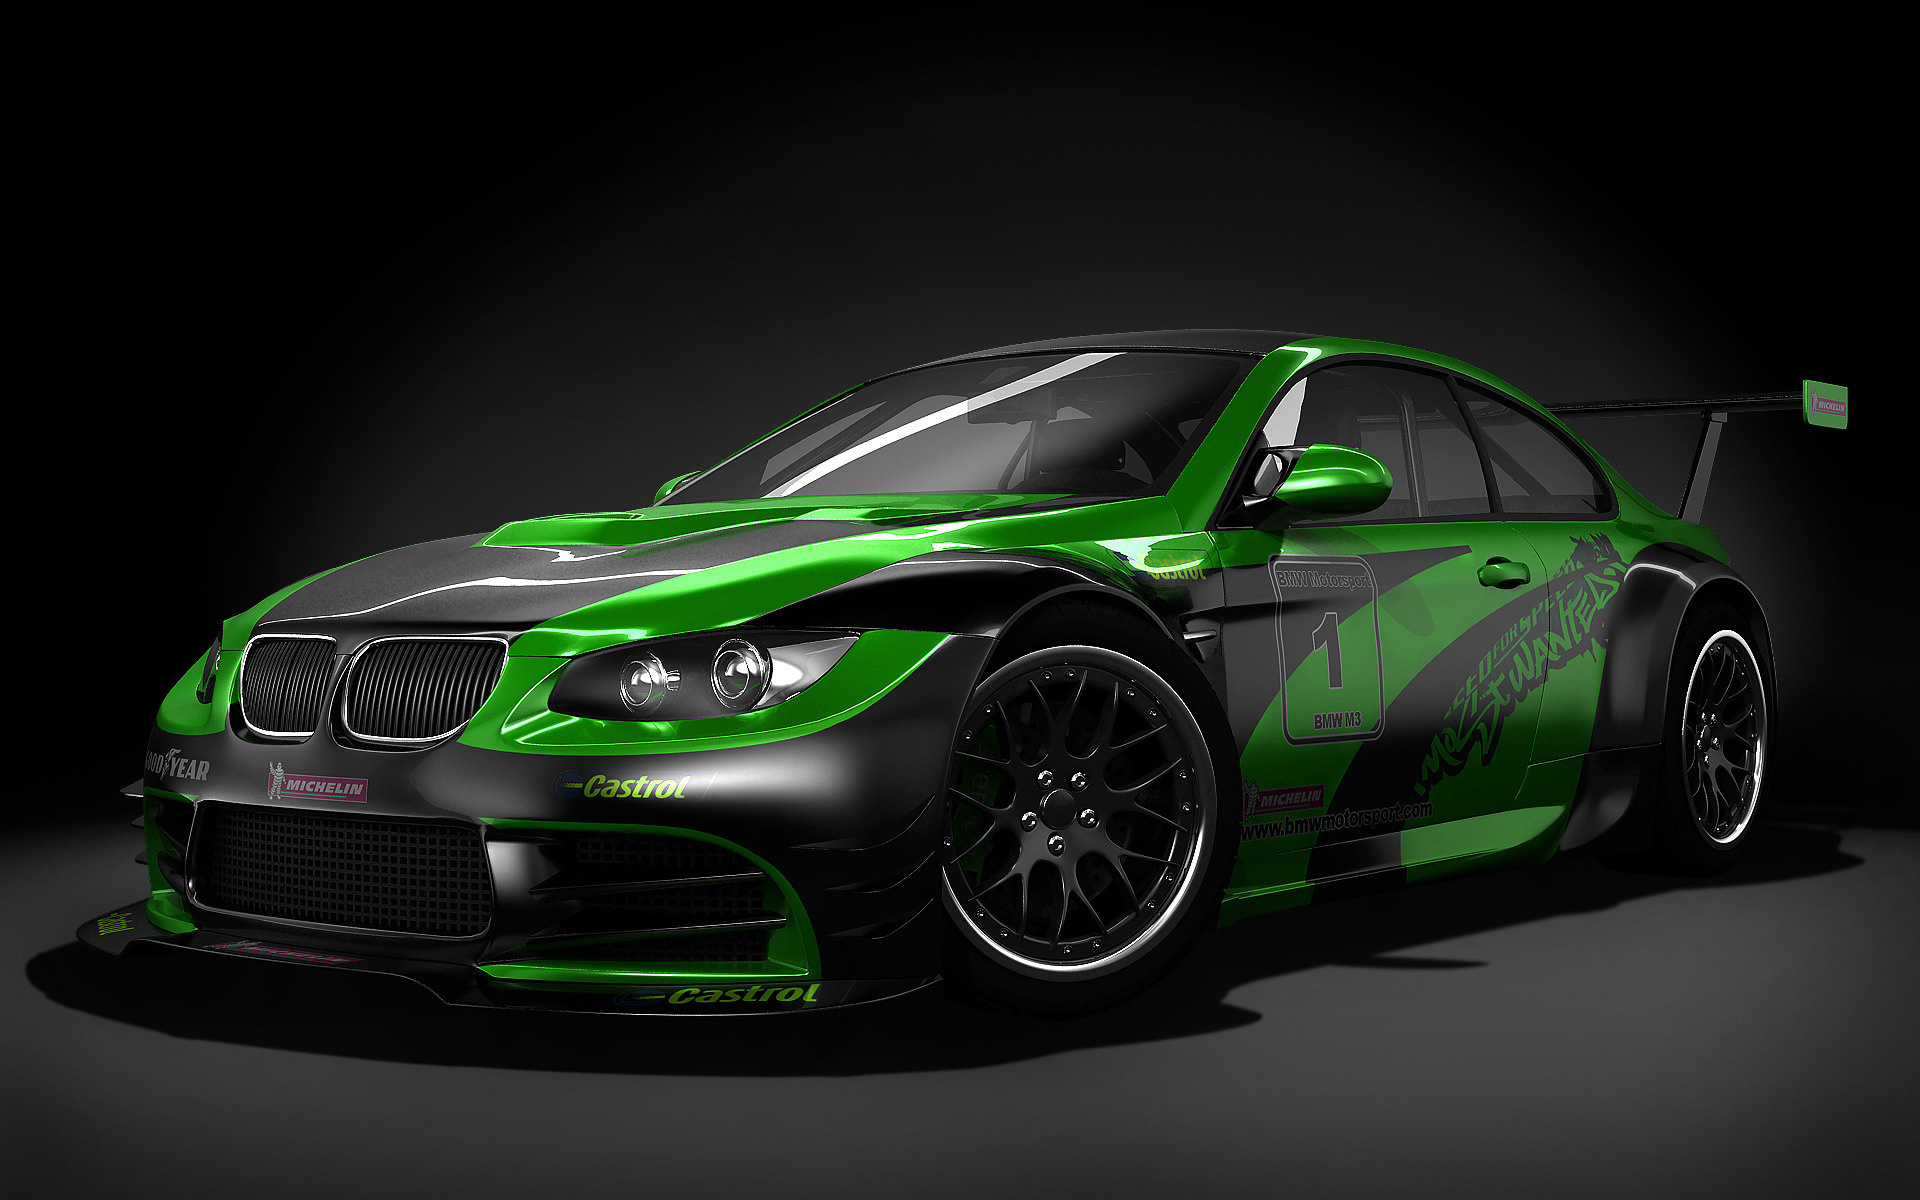 Black Green Modified Car Hd Wallpaper